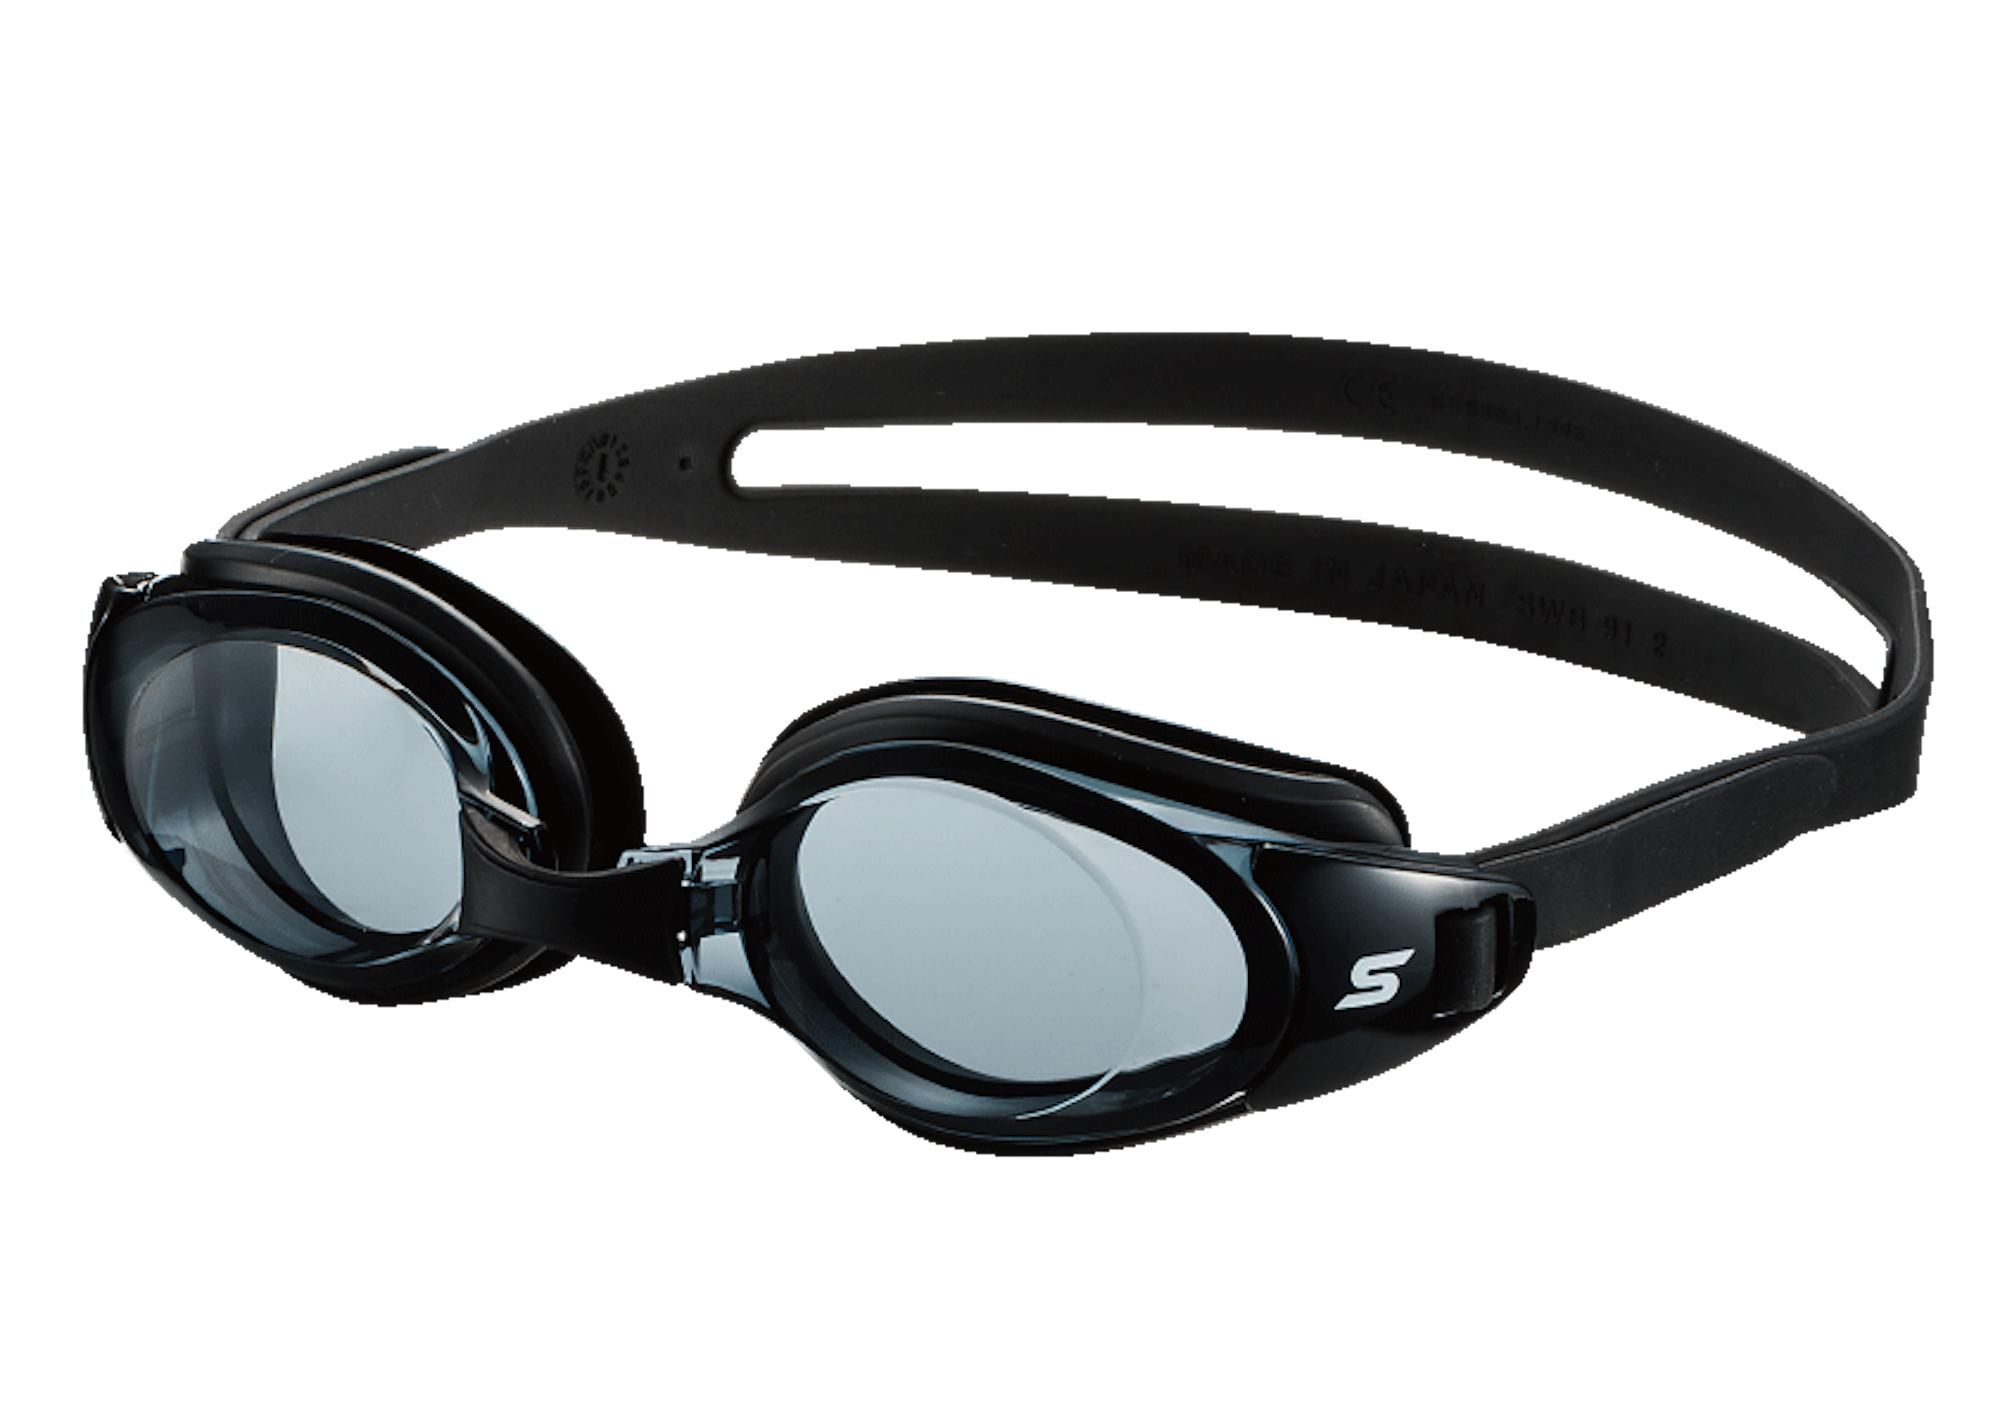 f3defc886c Latest SWANS Swiming Goggles Products